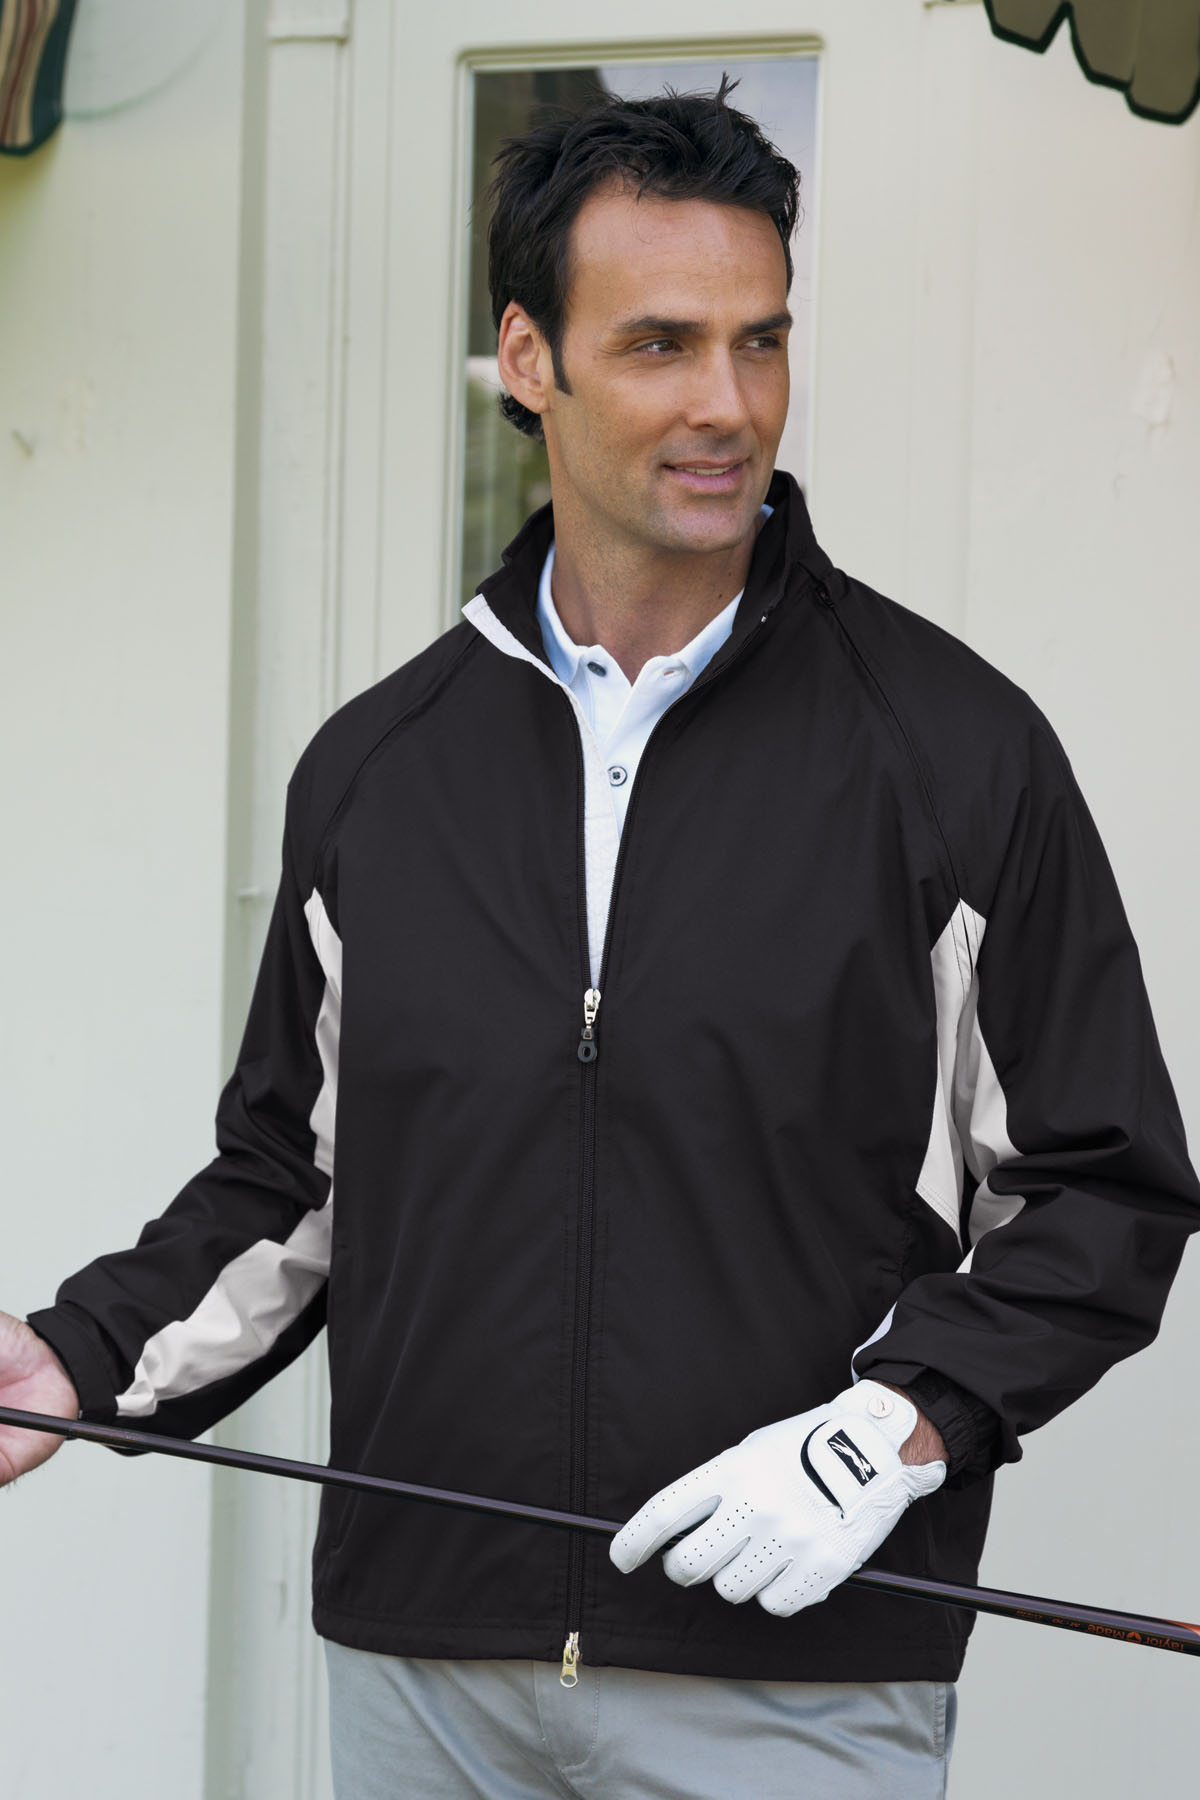 Vantage 6595 - Convertible Wind Jacket